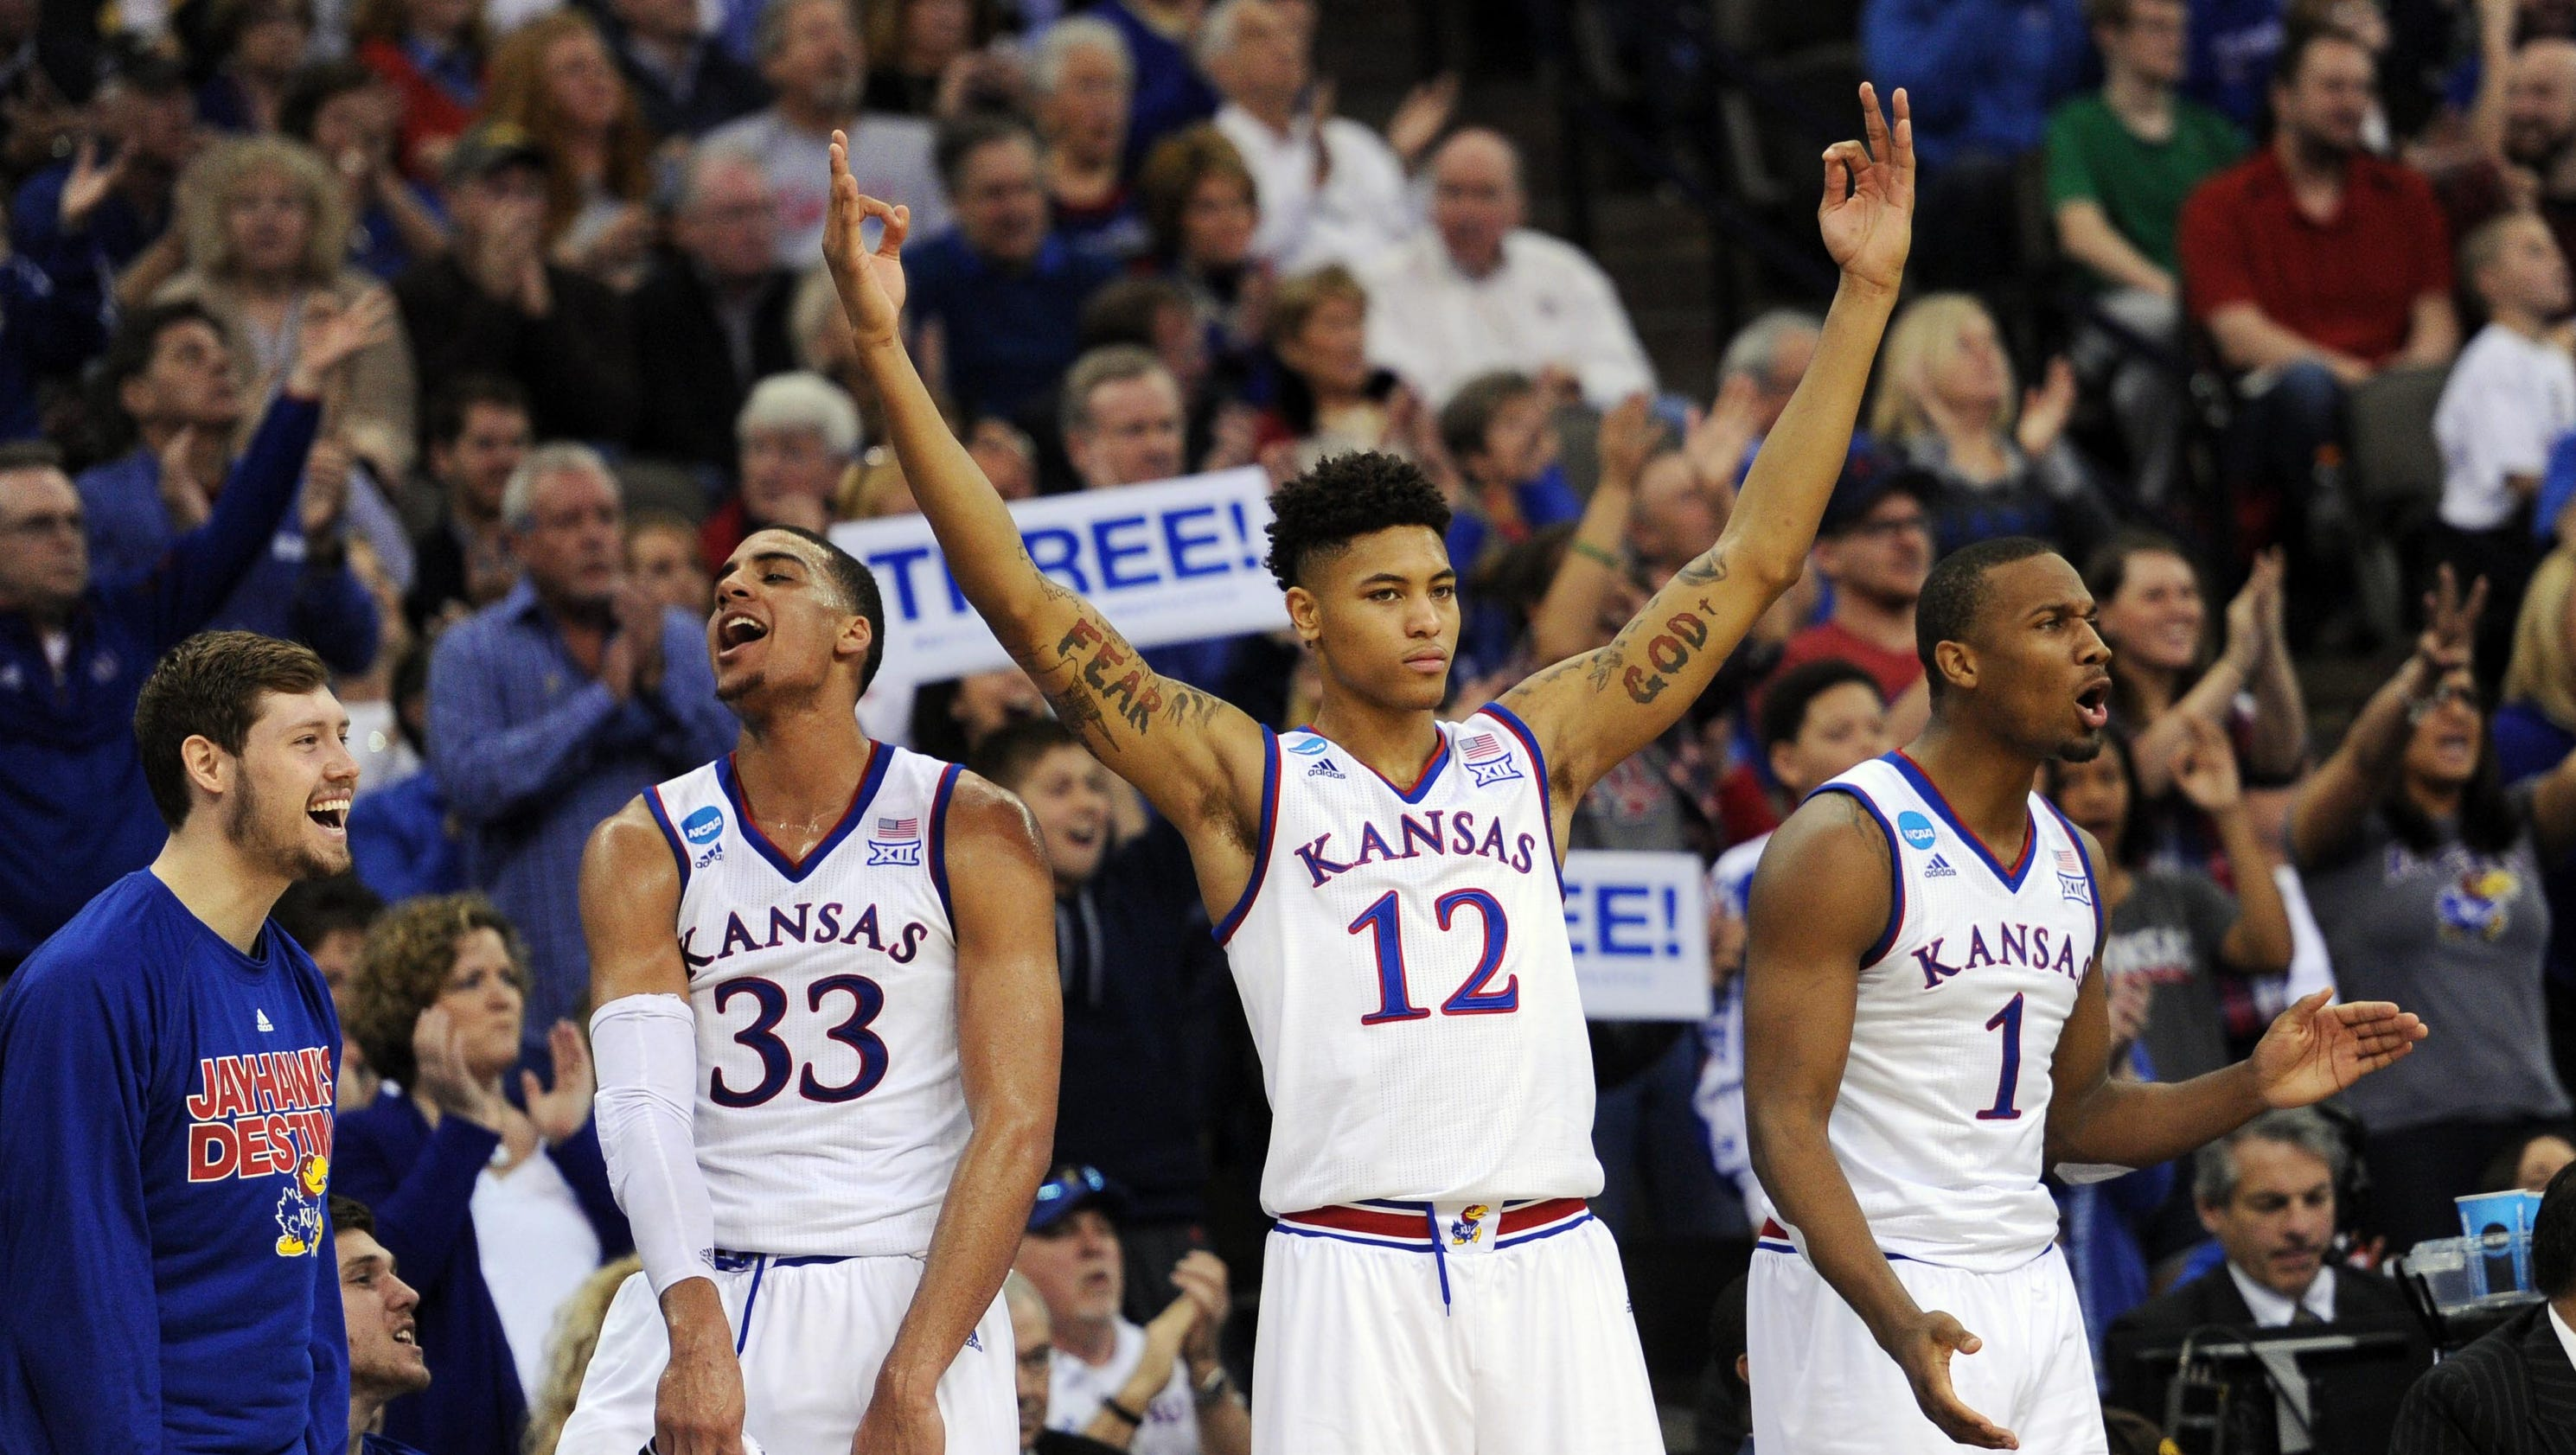 NCAA tournament schedule: Sunday's March Madness times, TV guide